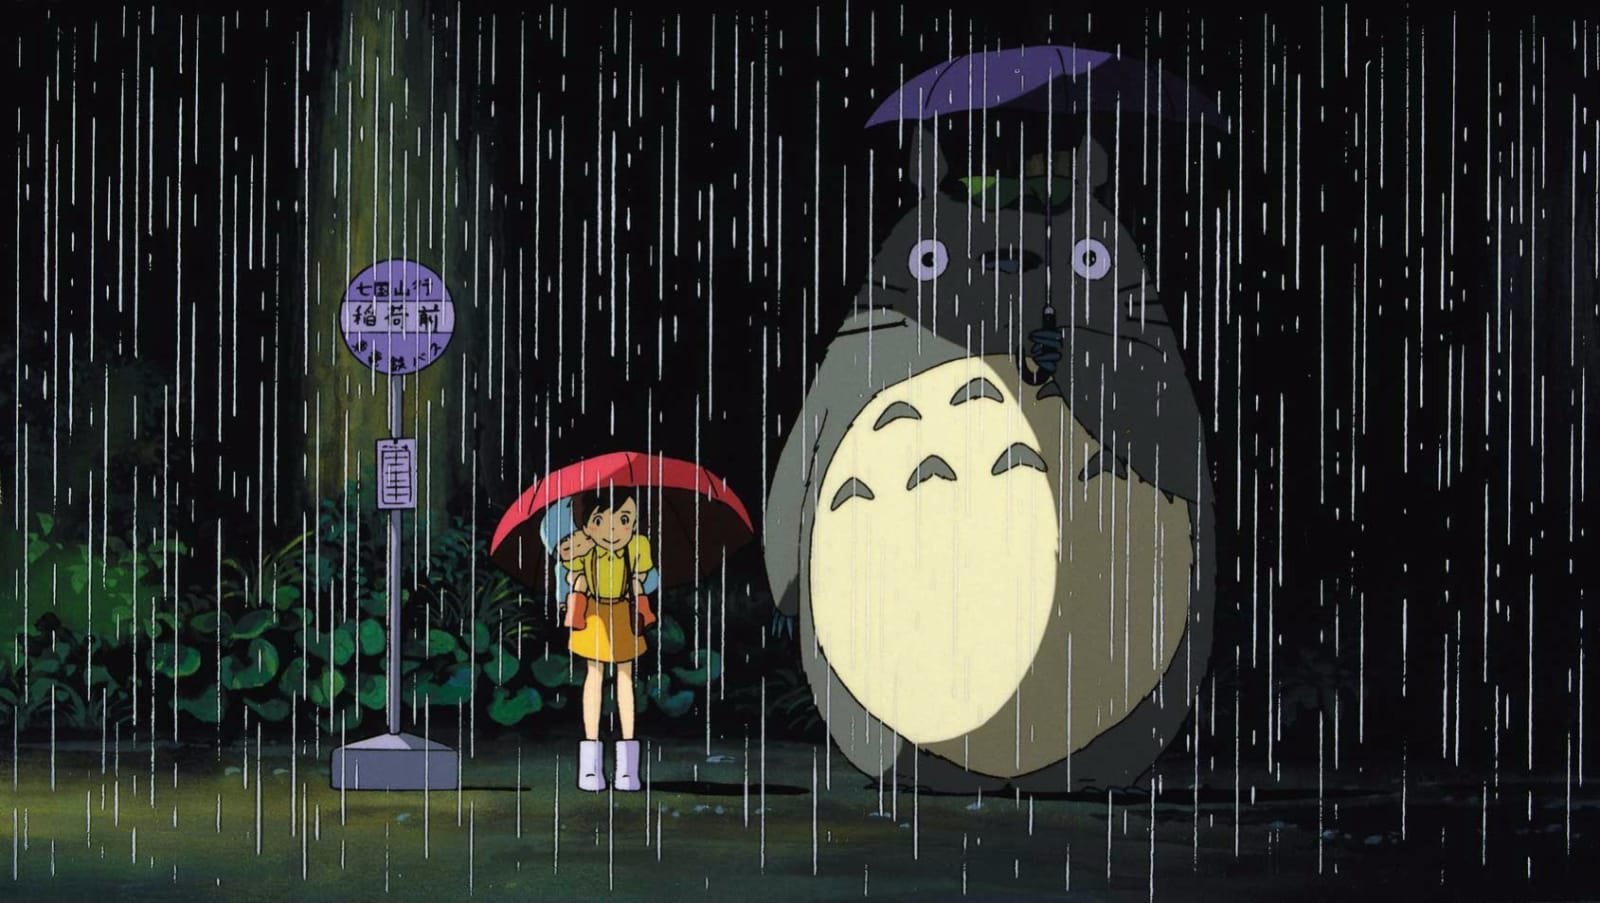 HBO Max will stream 'Spirited Away' and other Studio Ghibli movies